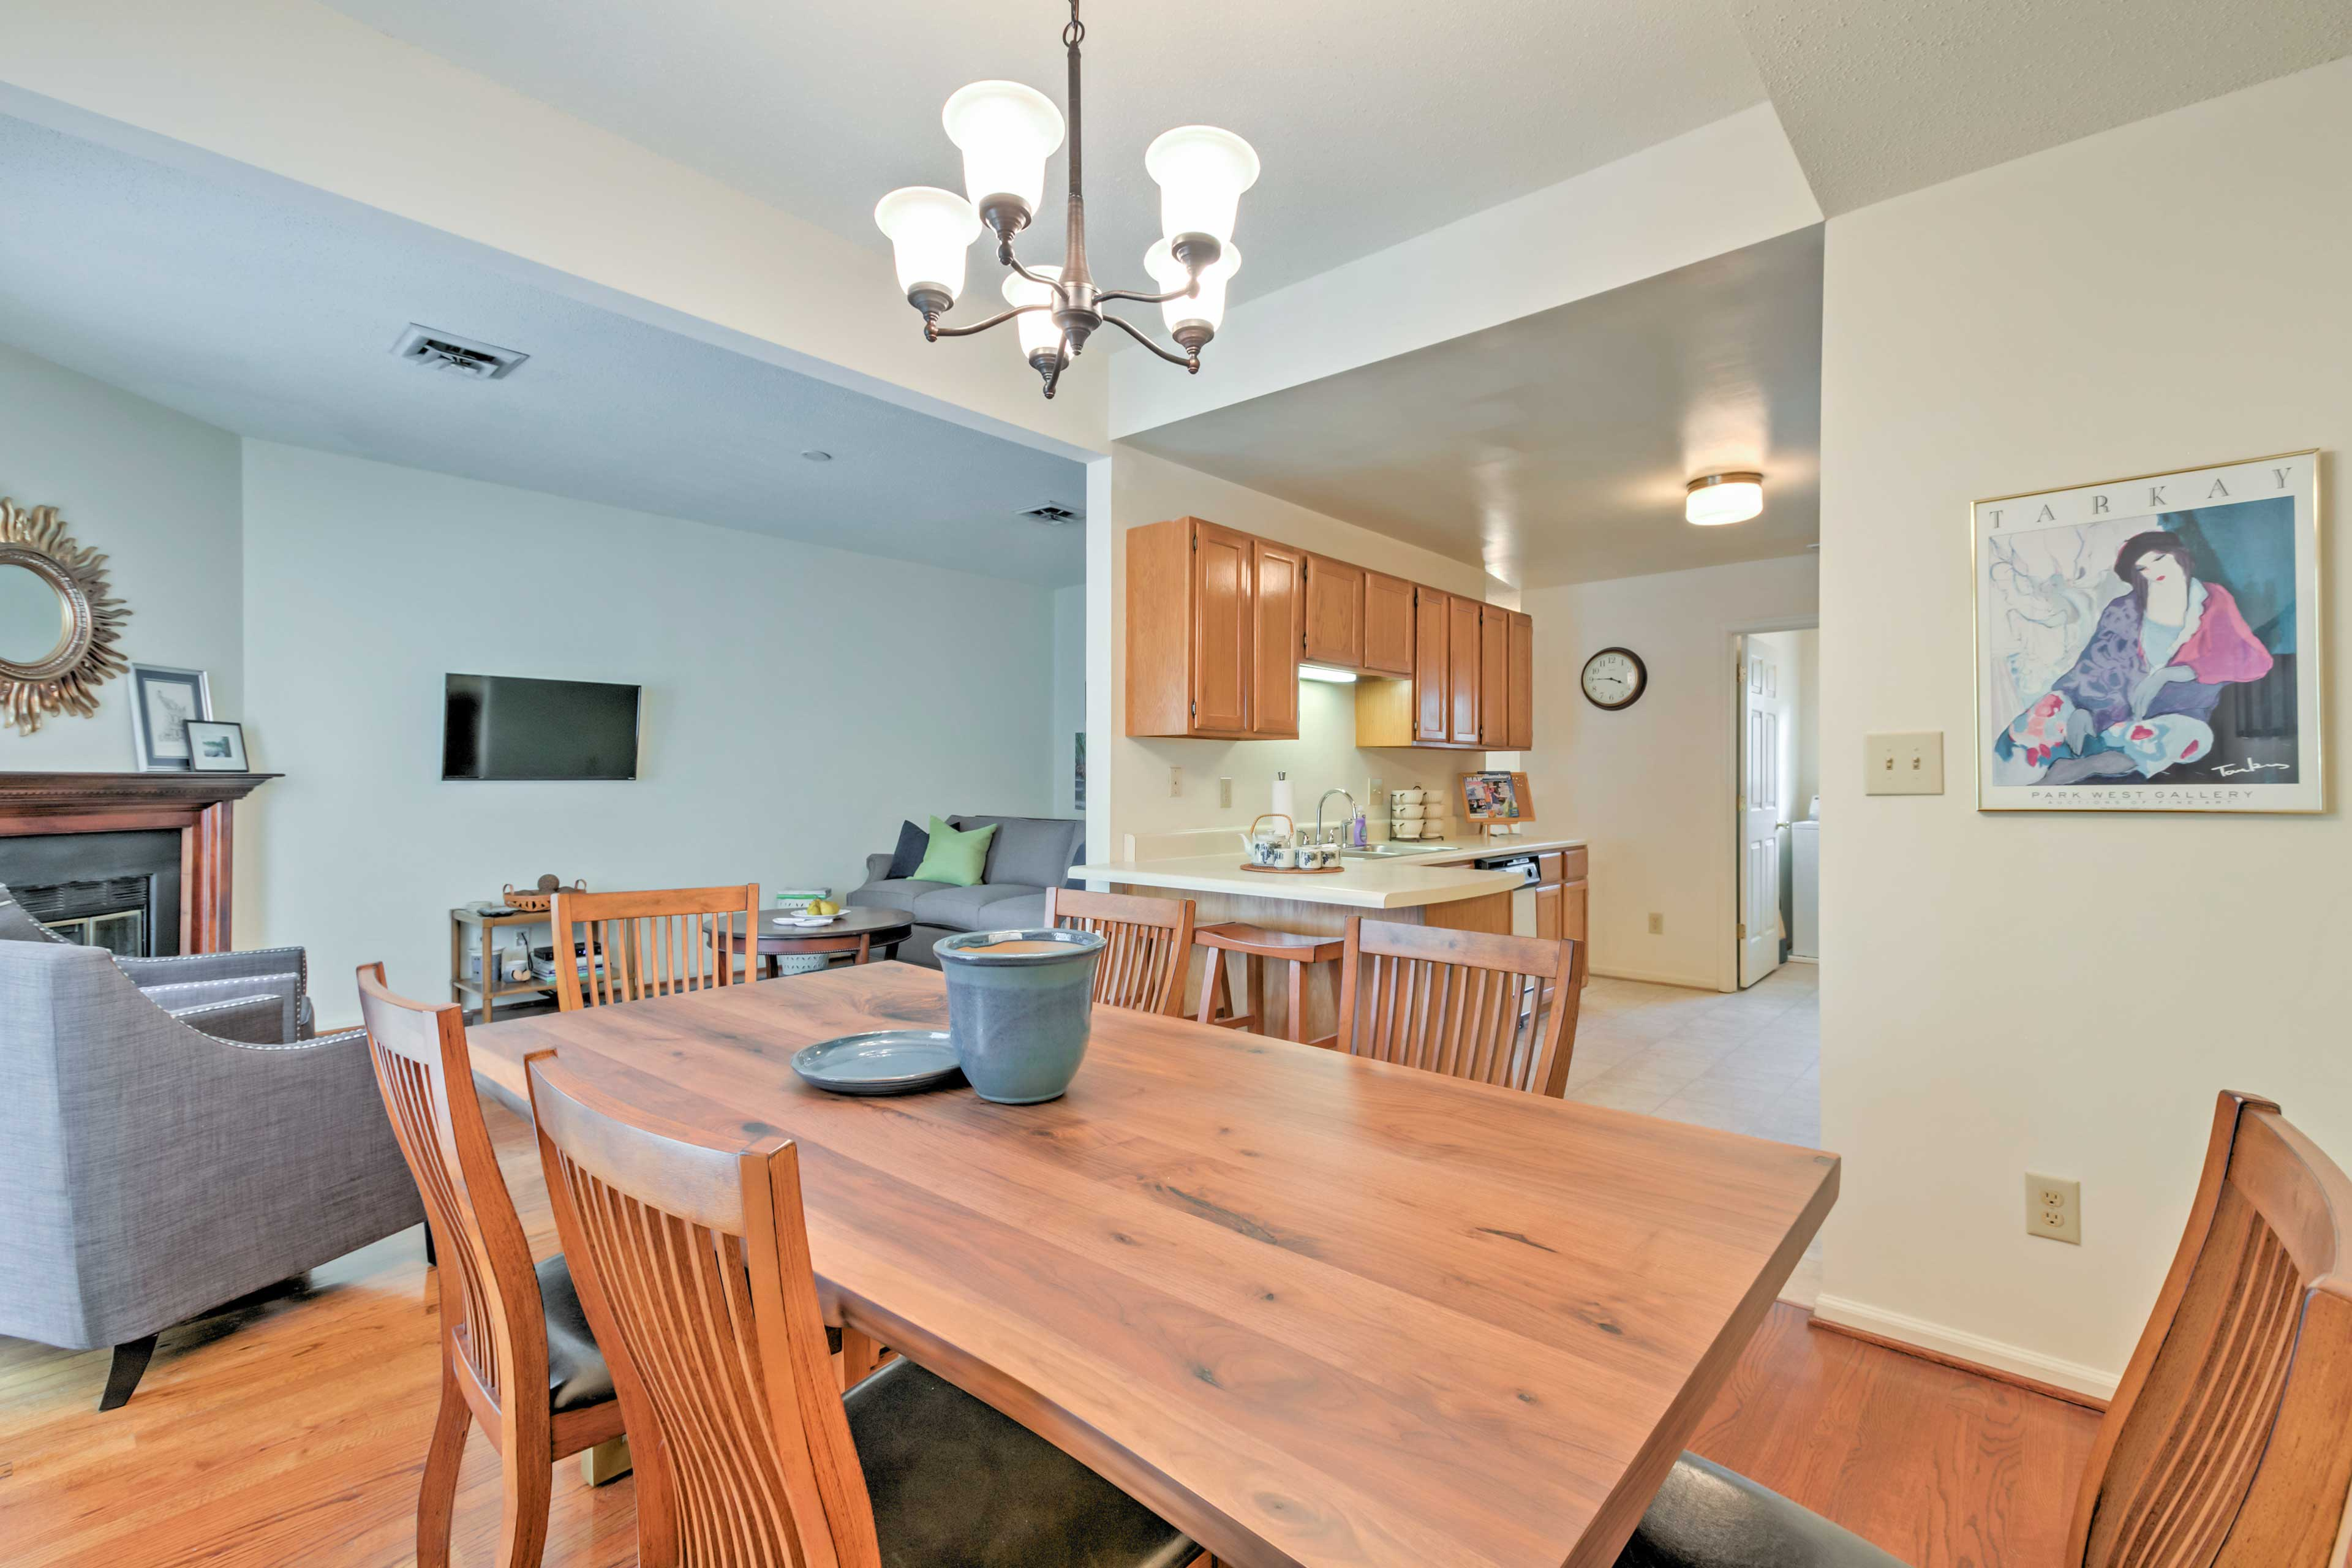 Adjacent to the dining area is the kitchen.